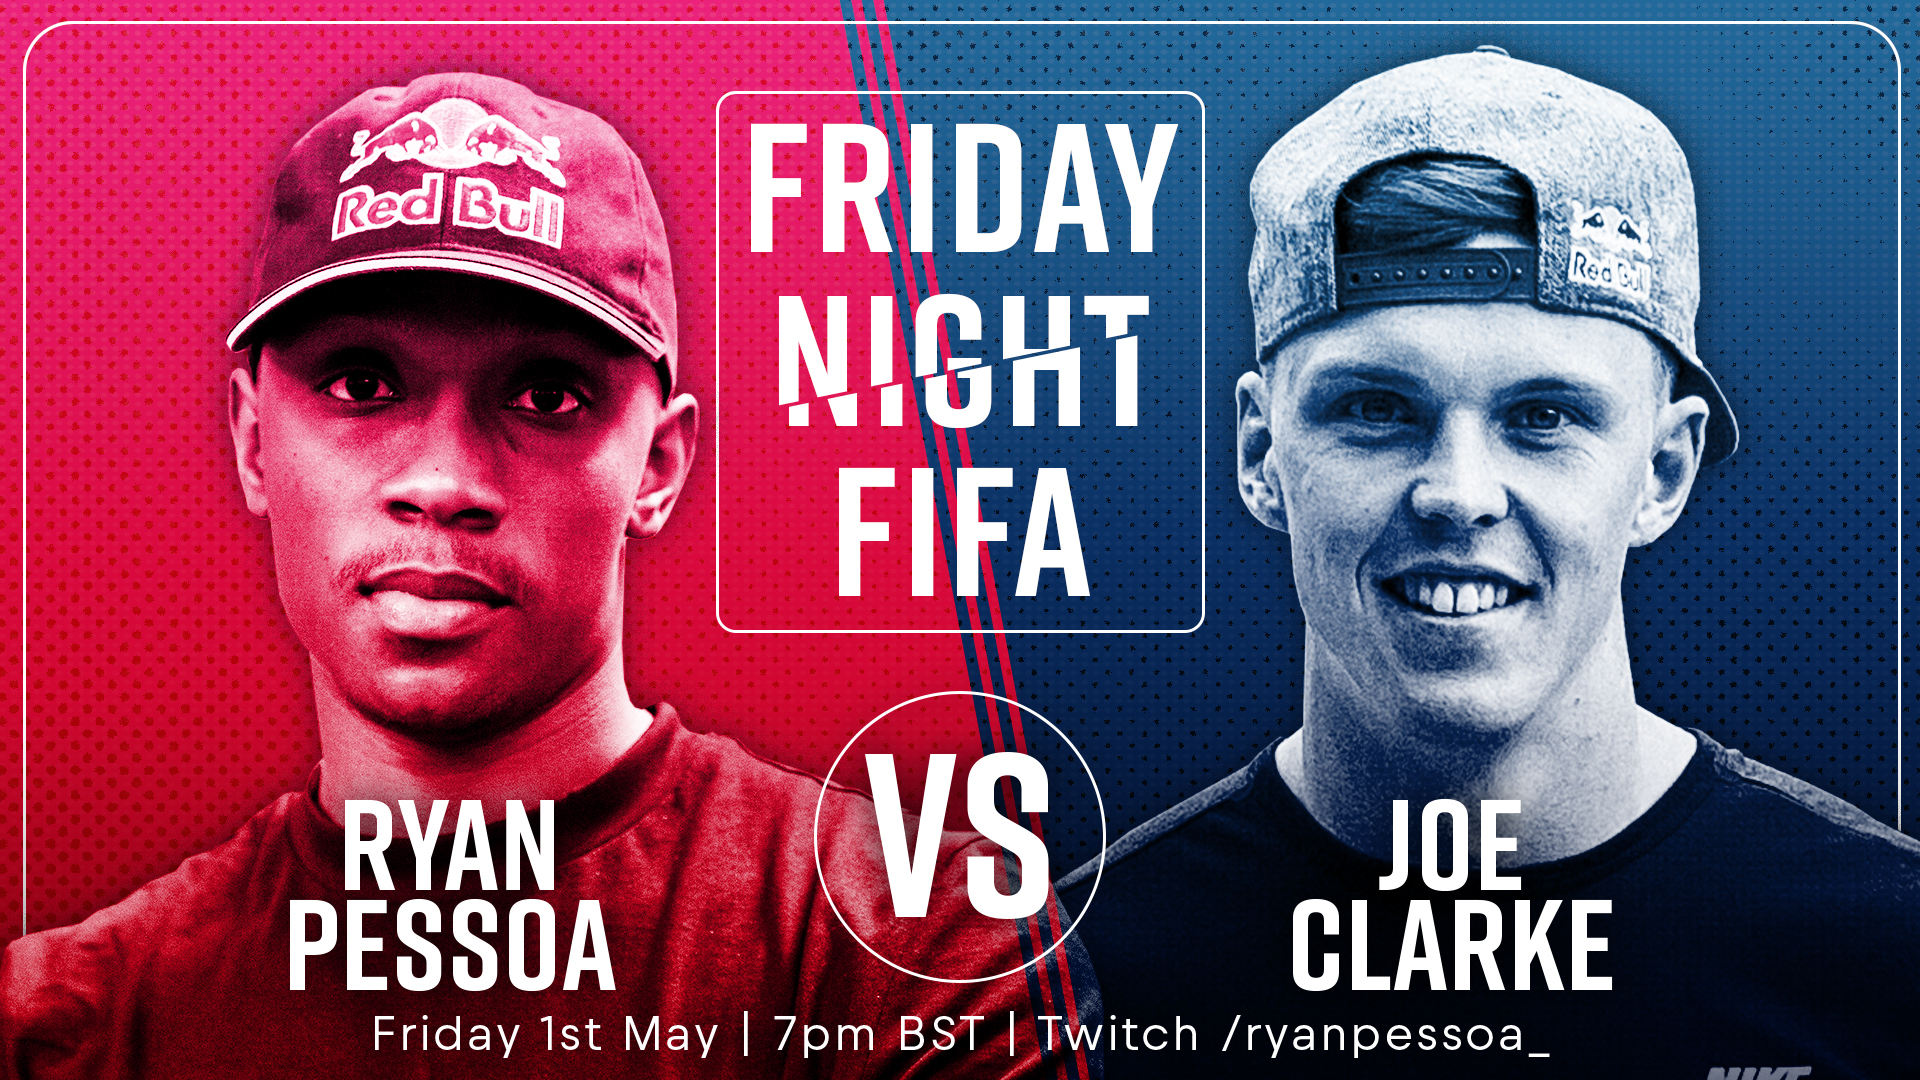 Team GB reigning Olympic gold Champion in the canoe slalom men's K1 Joe Clarke will face Man City Esports star Ryan Pessoa in FIFA 20